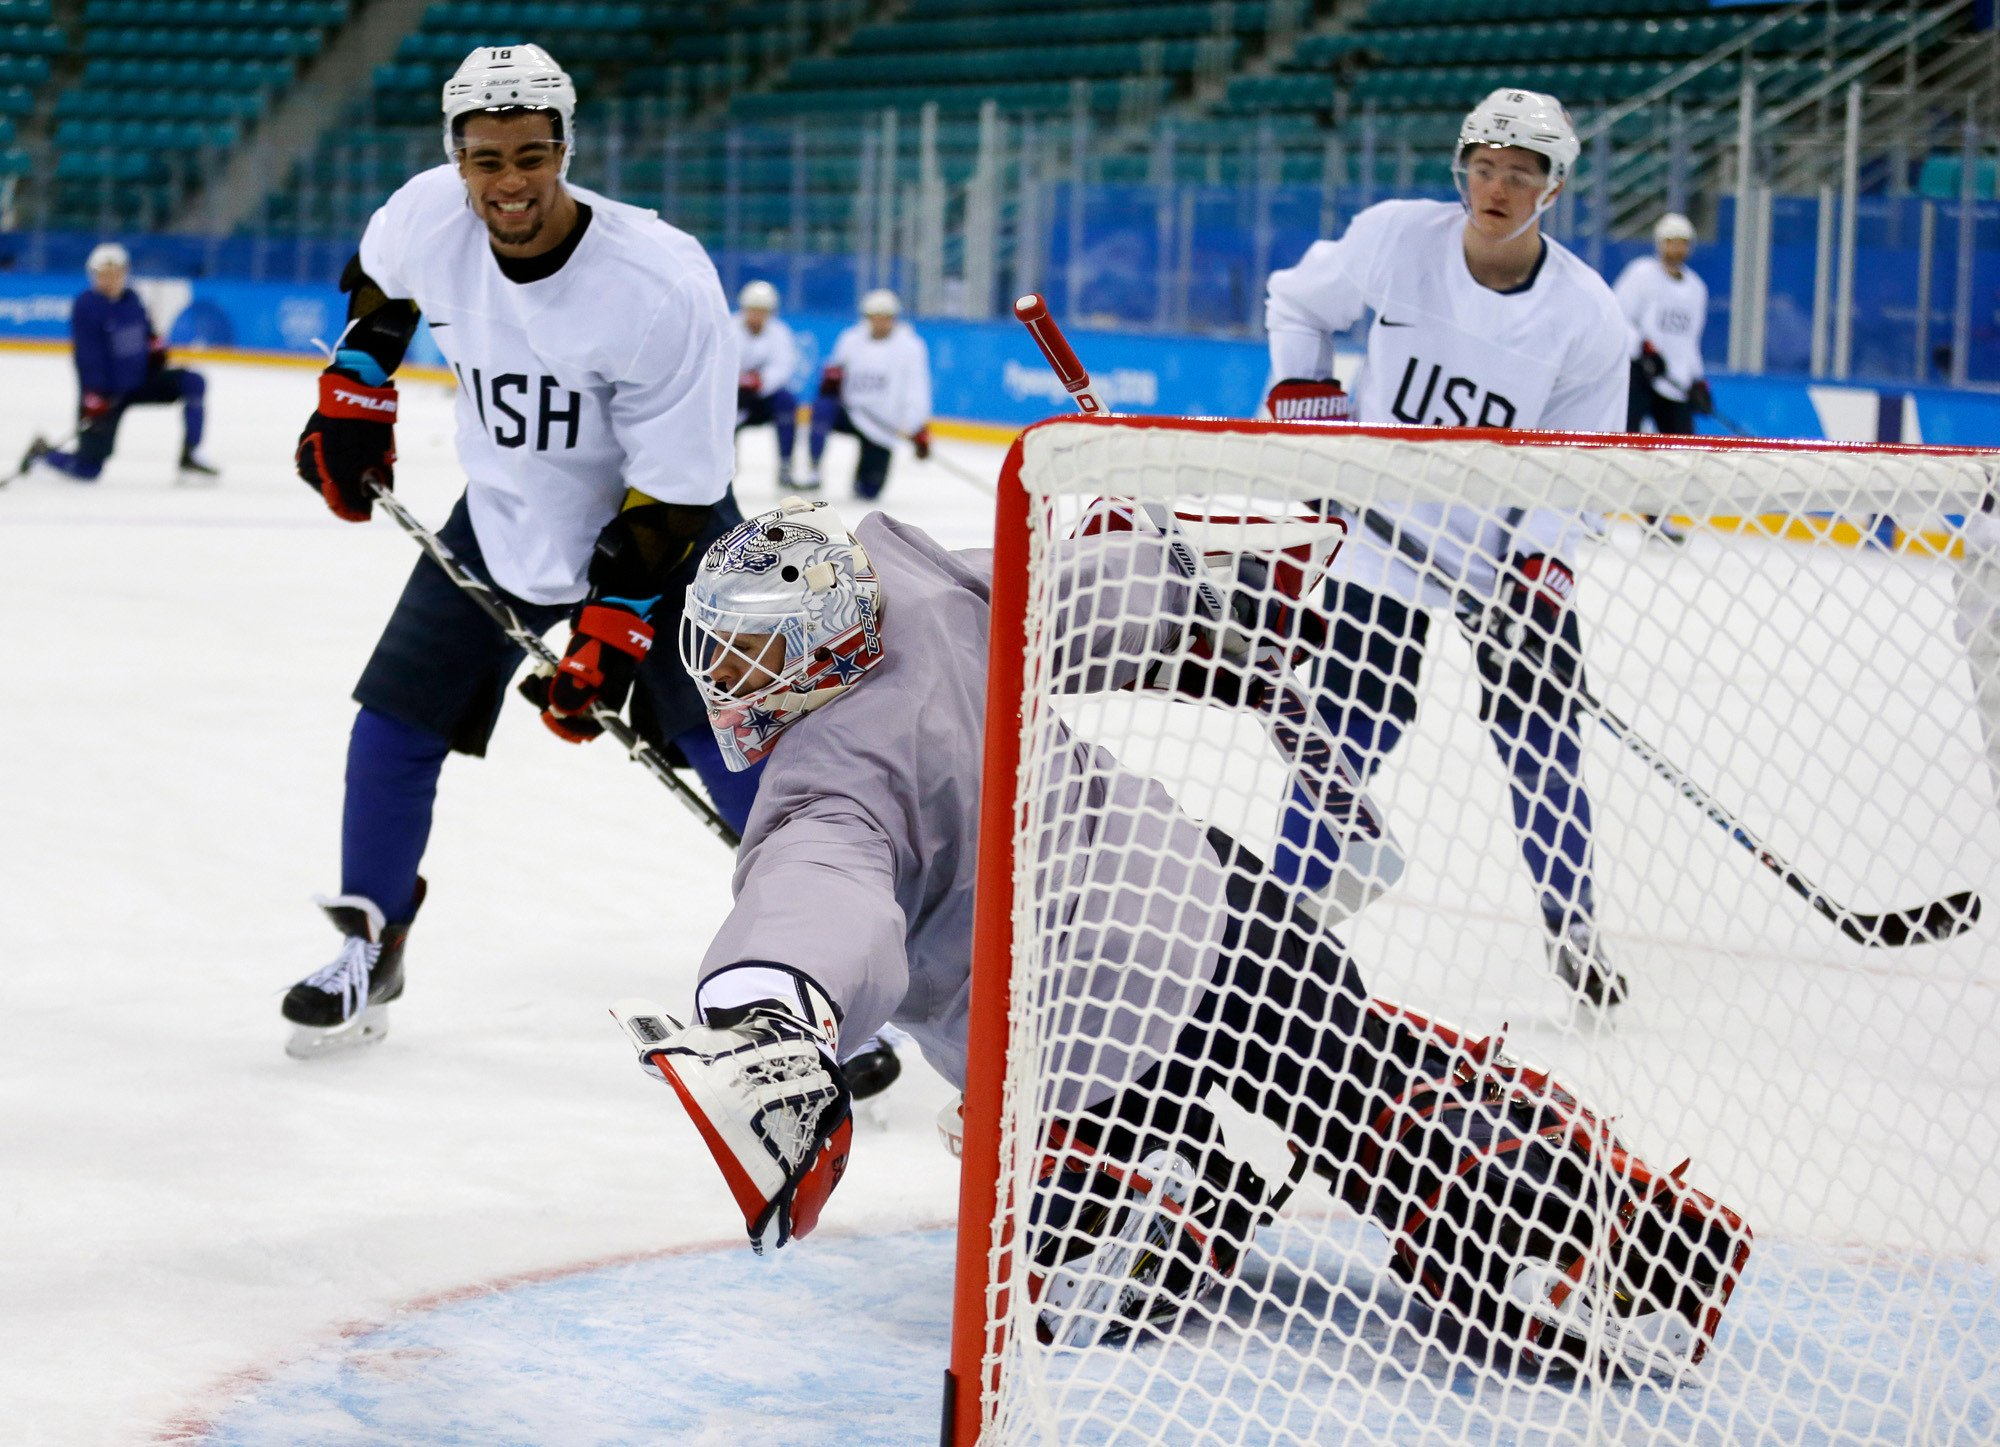 US hockey team builds chemistry through group chat